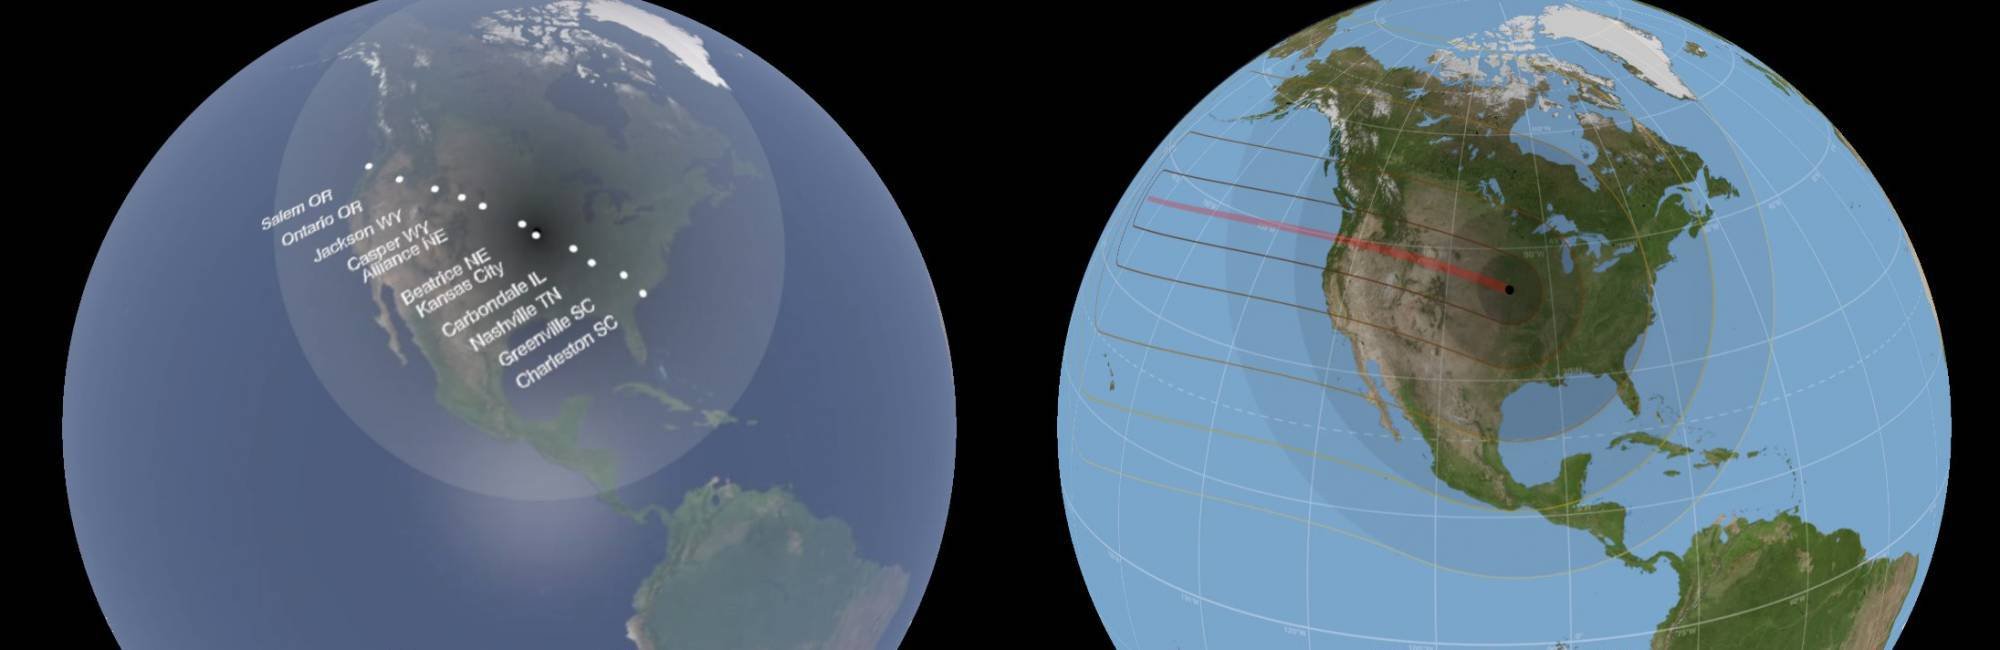 two globes showing eclilpse path